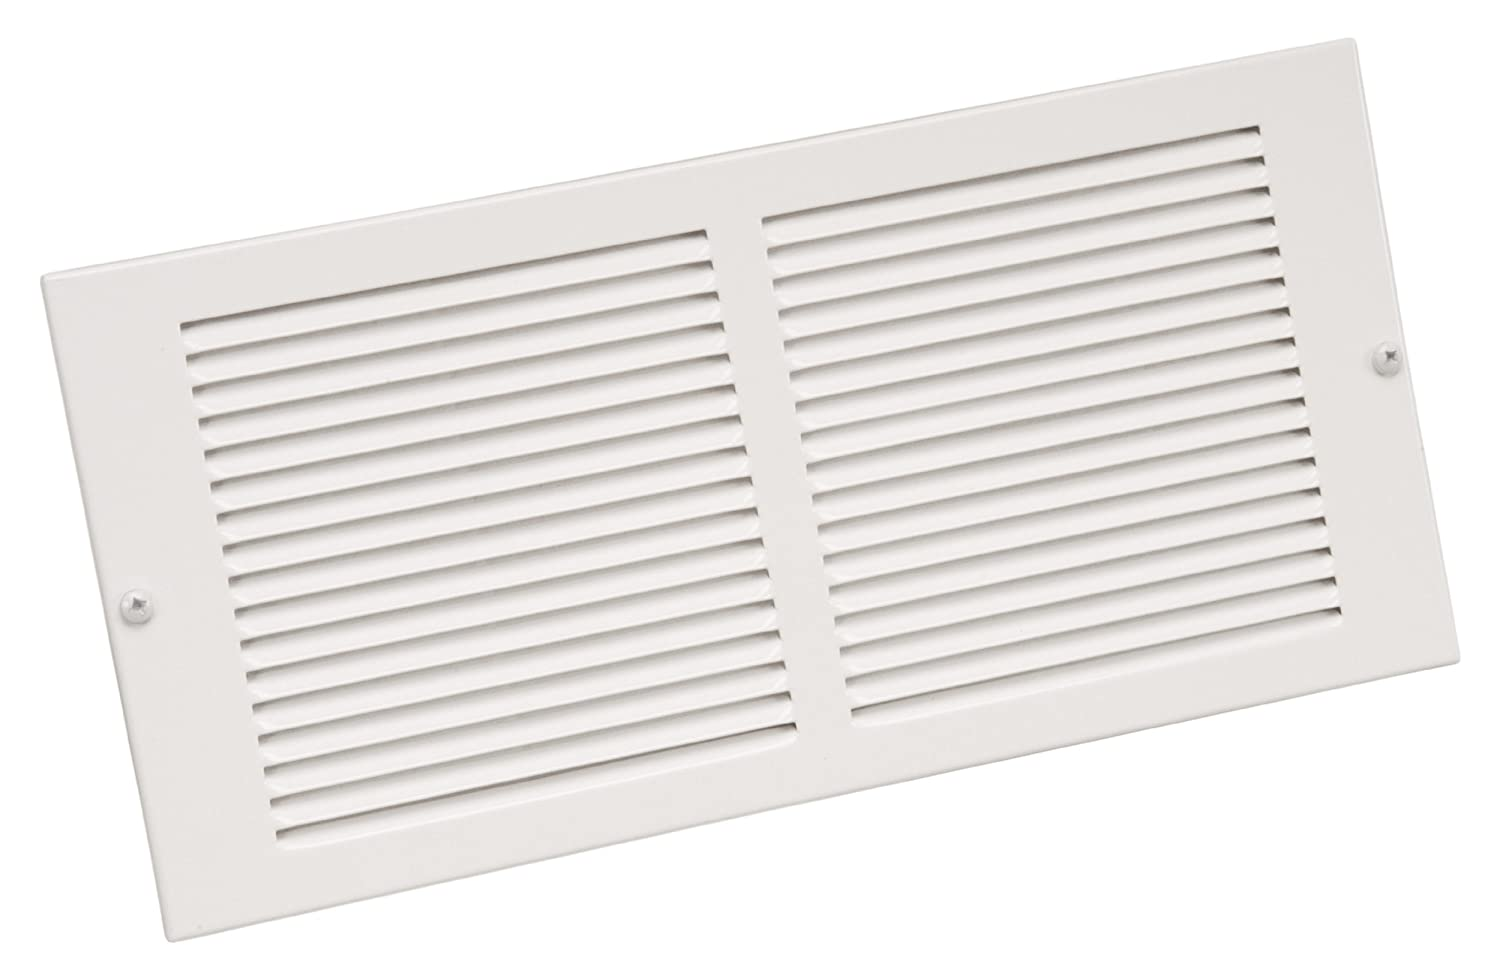 Imperial 10' x 4' Sidewall Grill, White, RG0341 Imperial Manufacturing